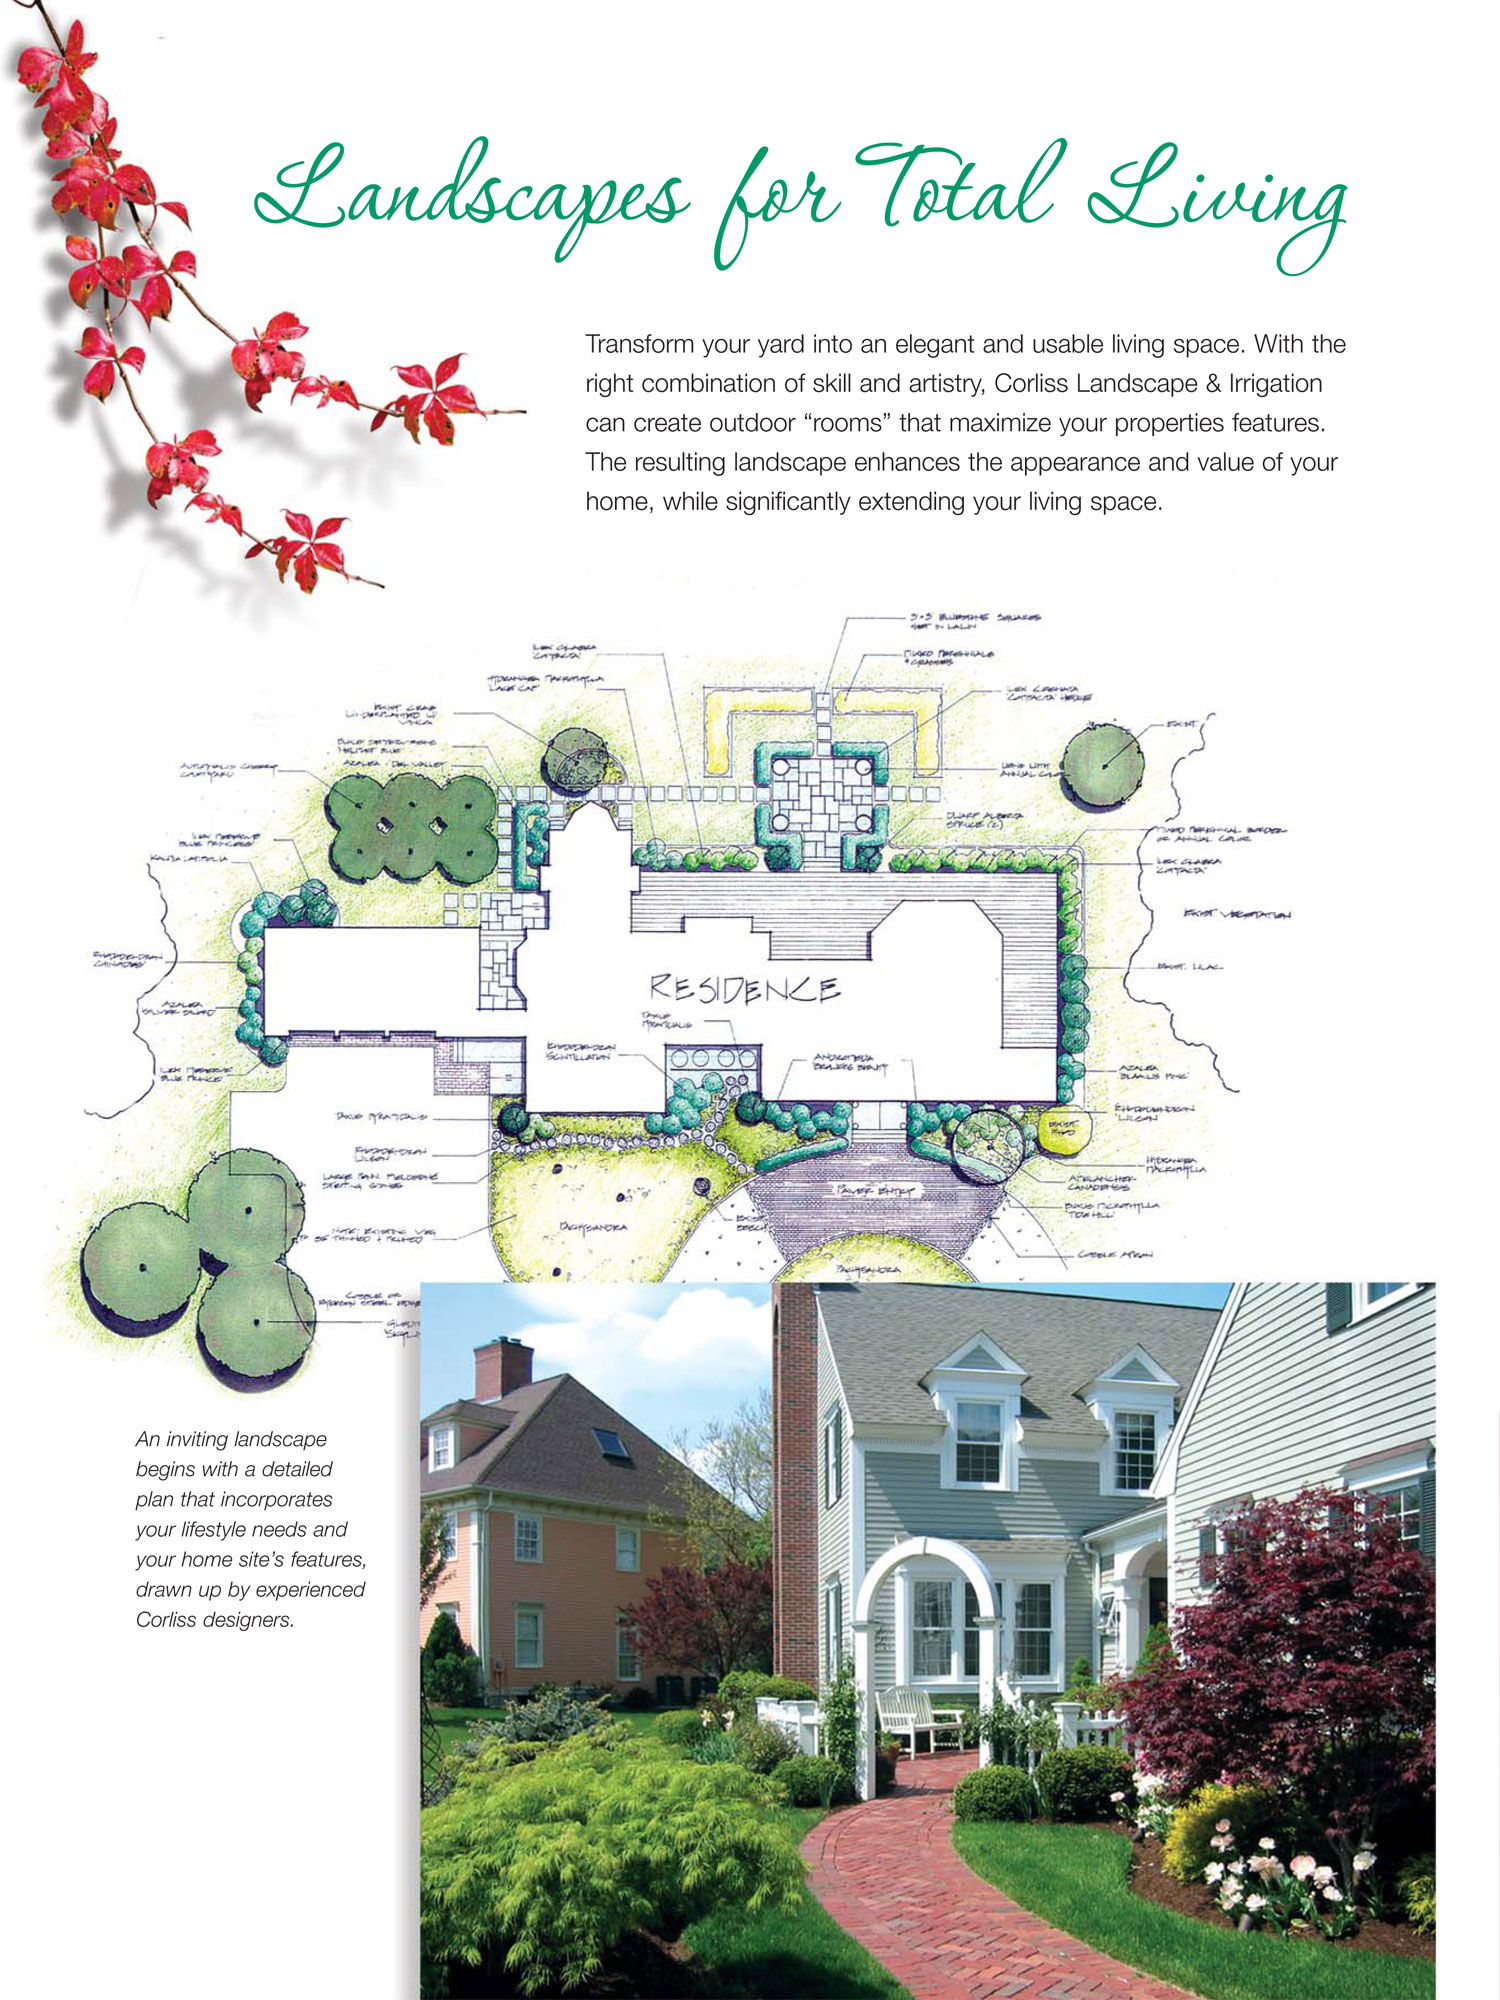 Landscape Design Company Corliss Landscaping Lawn Care - Home irrigation design